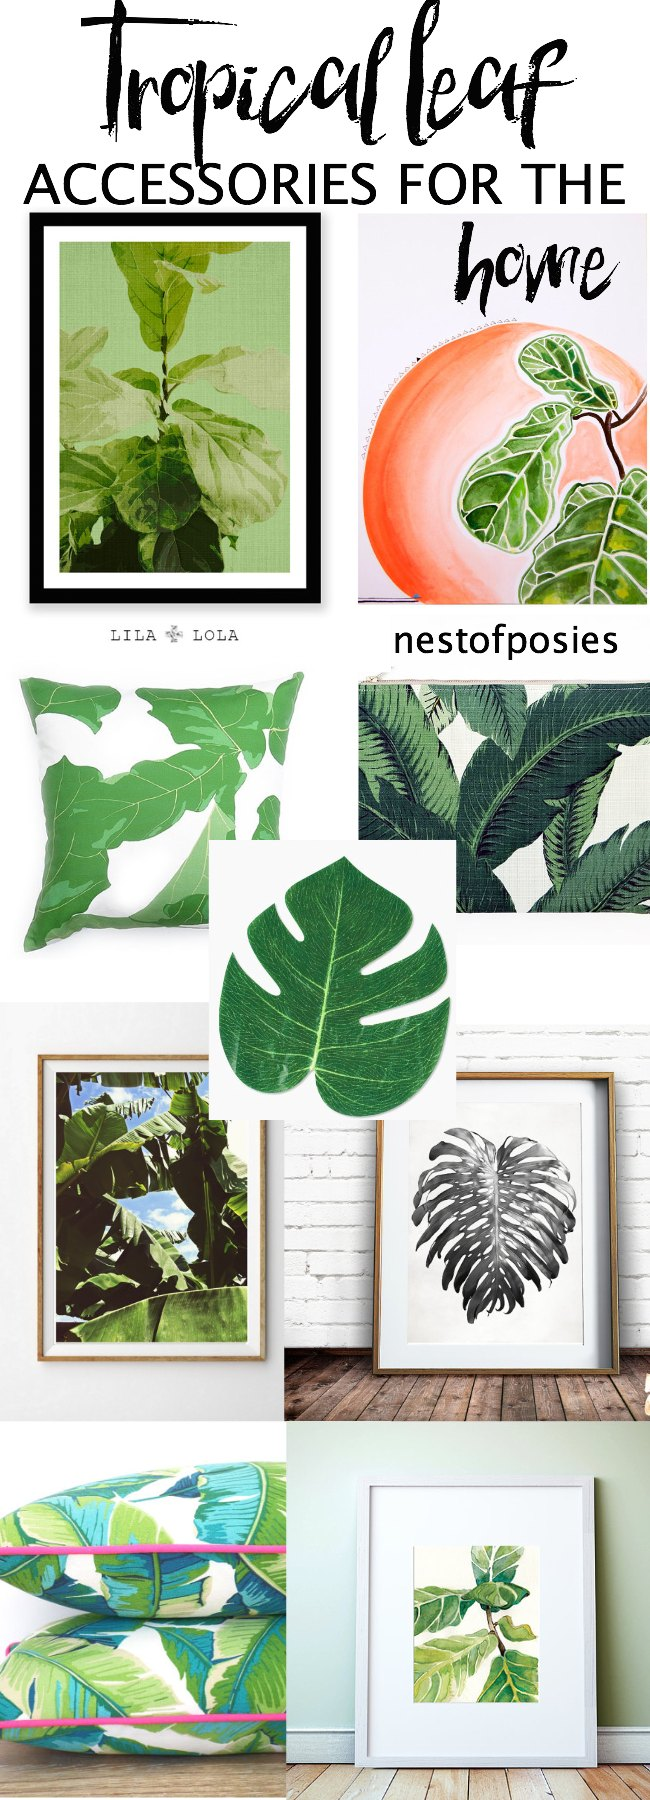 Tropical Palm Leaf Accessories for the home